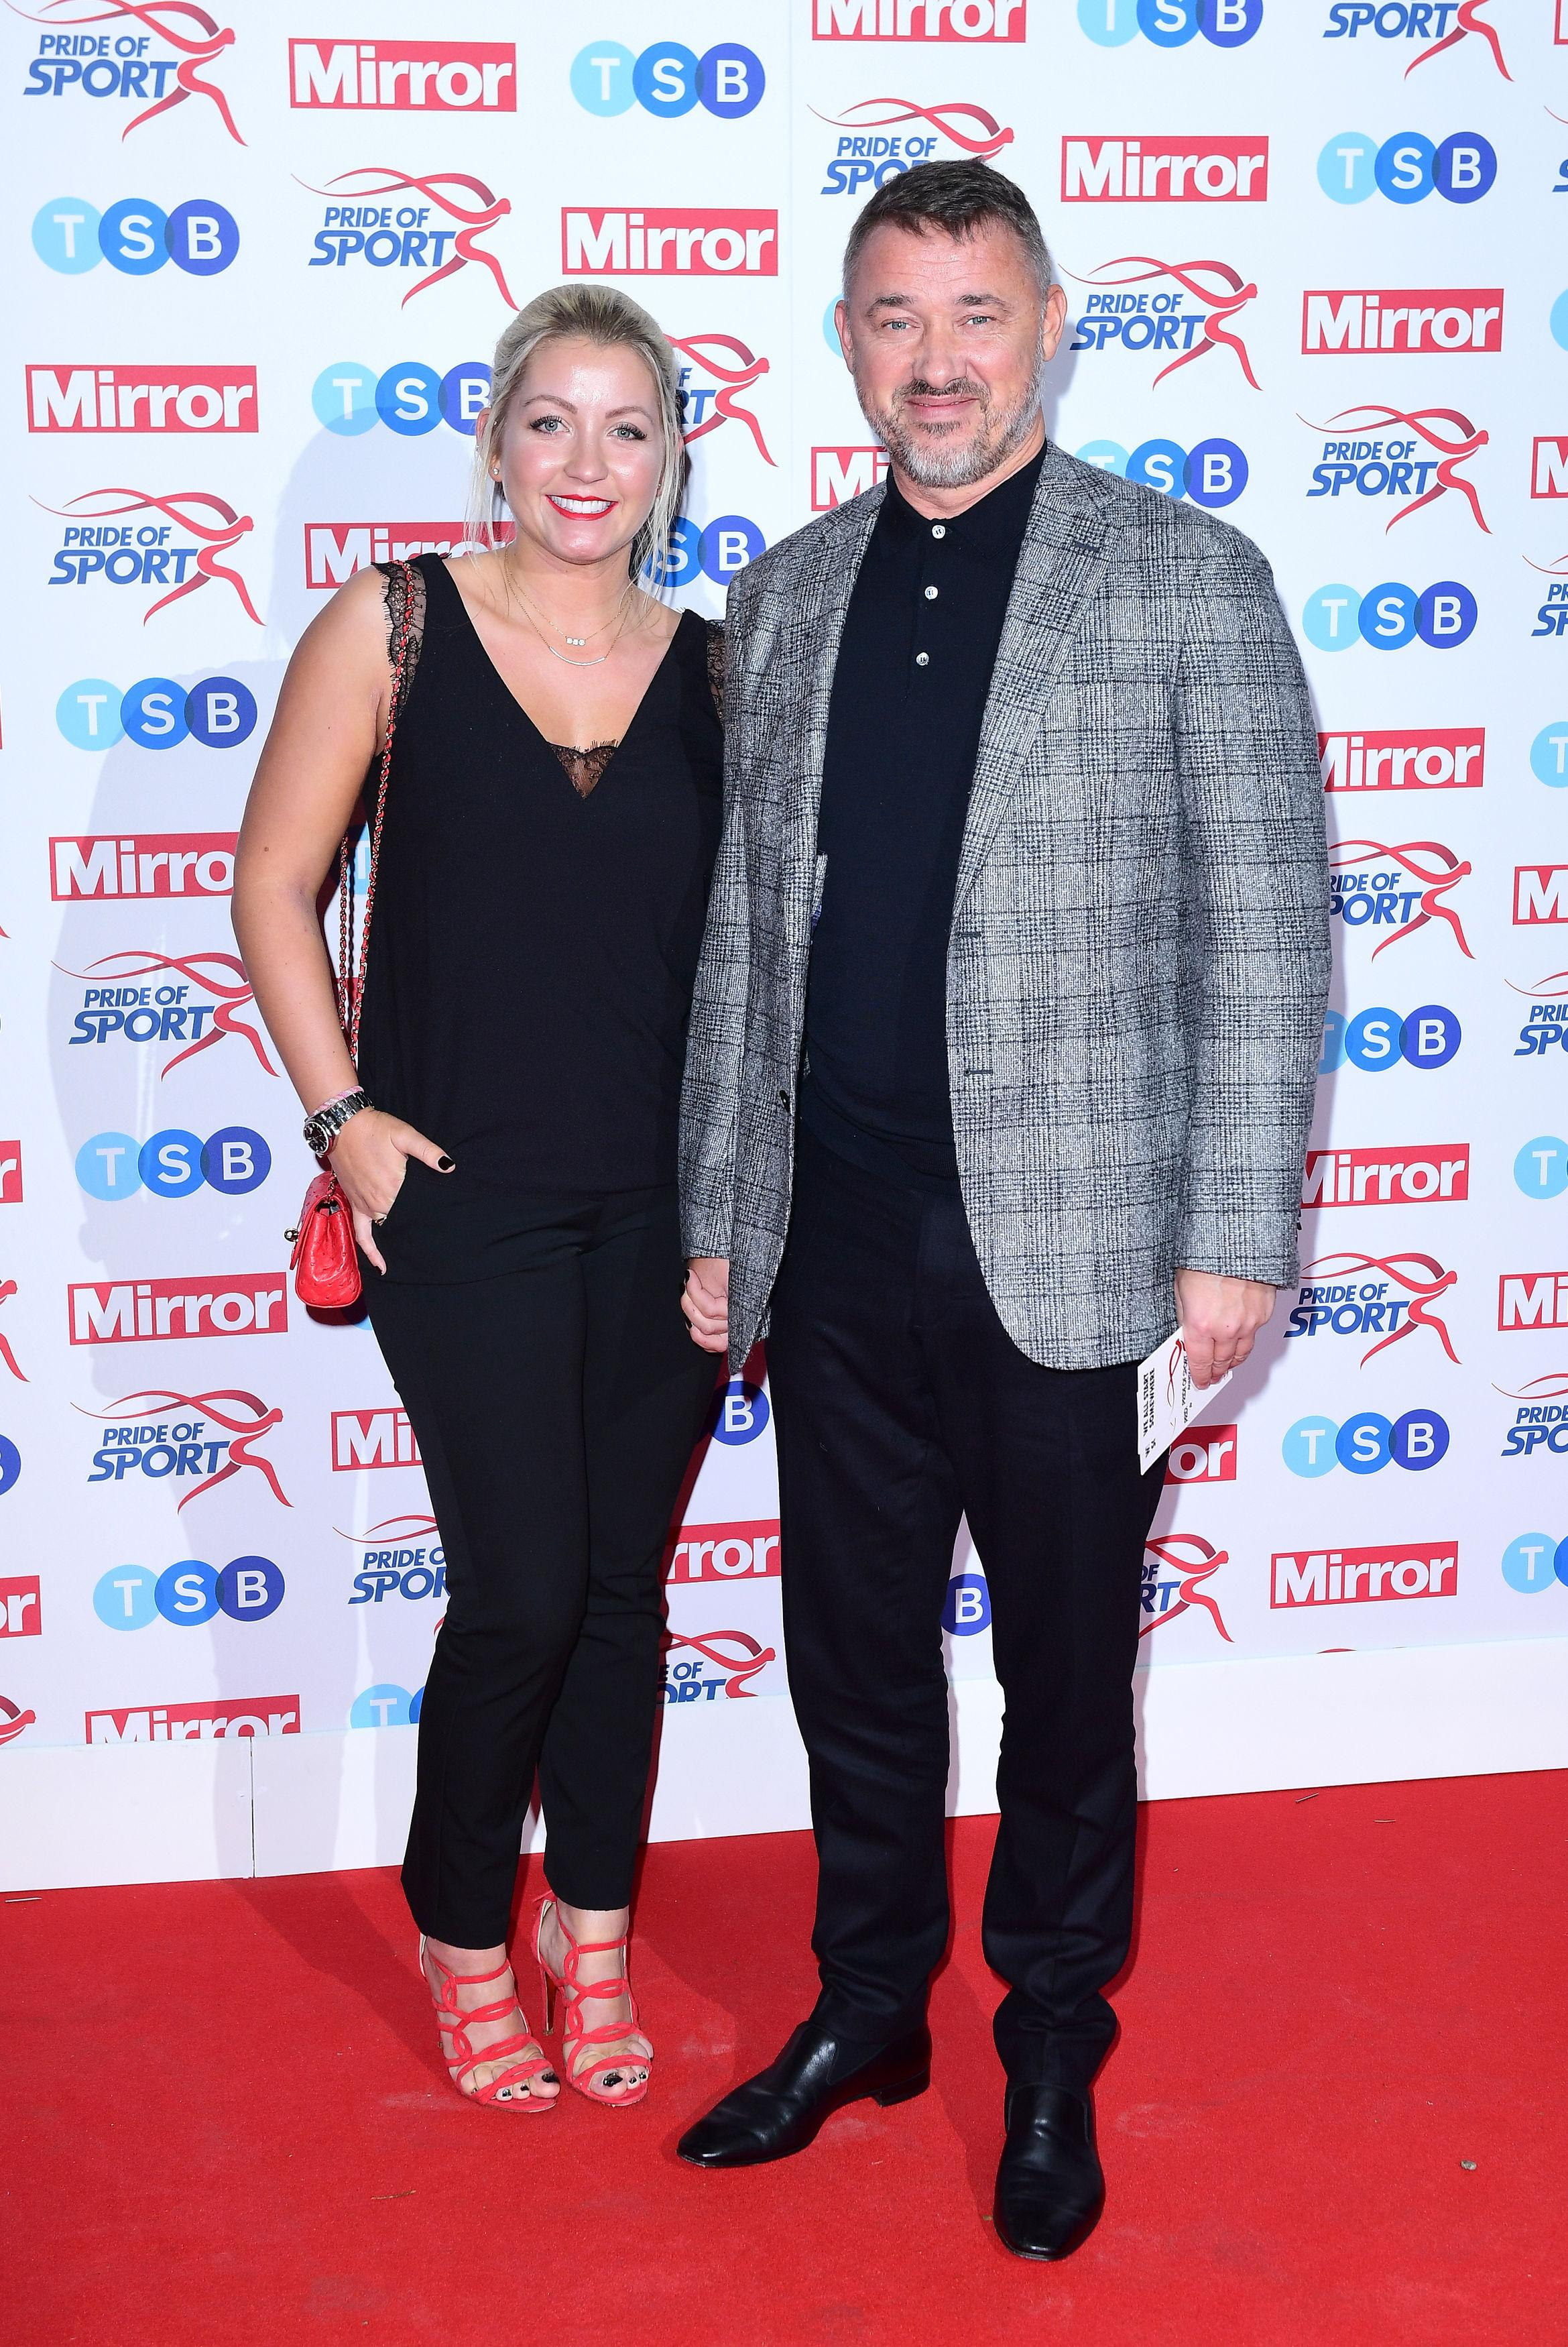 Stephen Hendry is currently dating Lauren Thundow, who is 20 years younger than the snooker legend